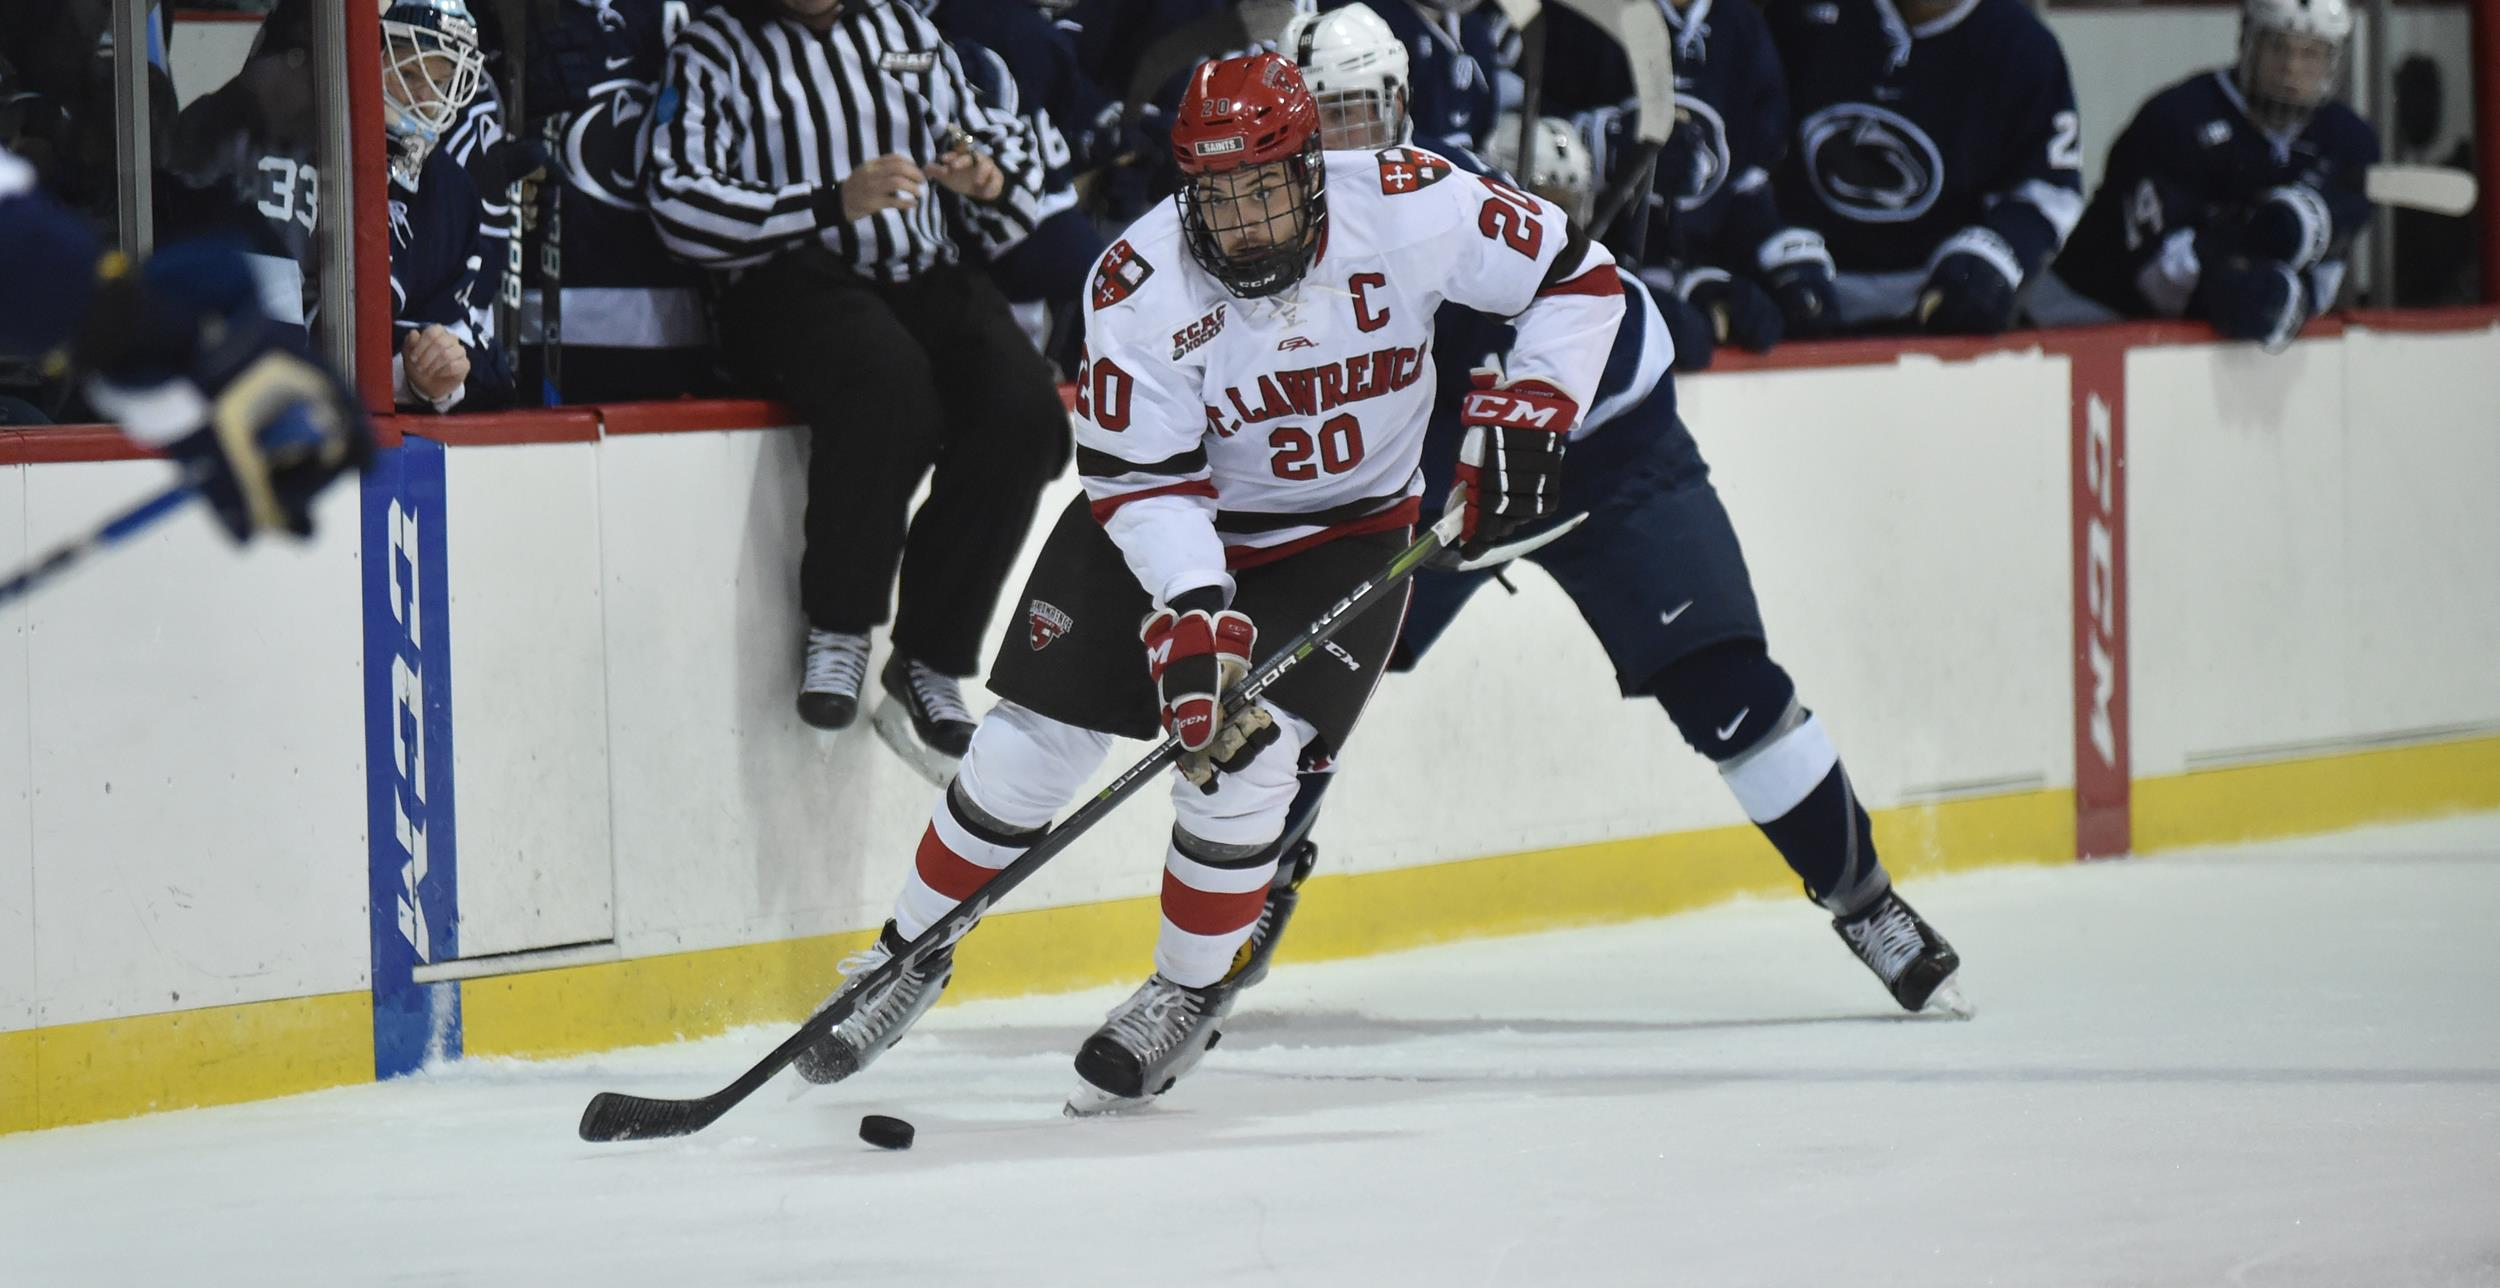 Image result for photo of joe sullivan st. lawrence hockey